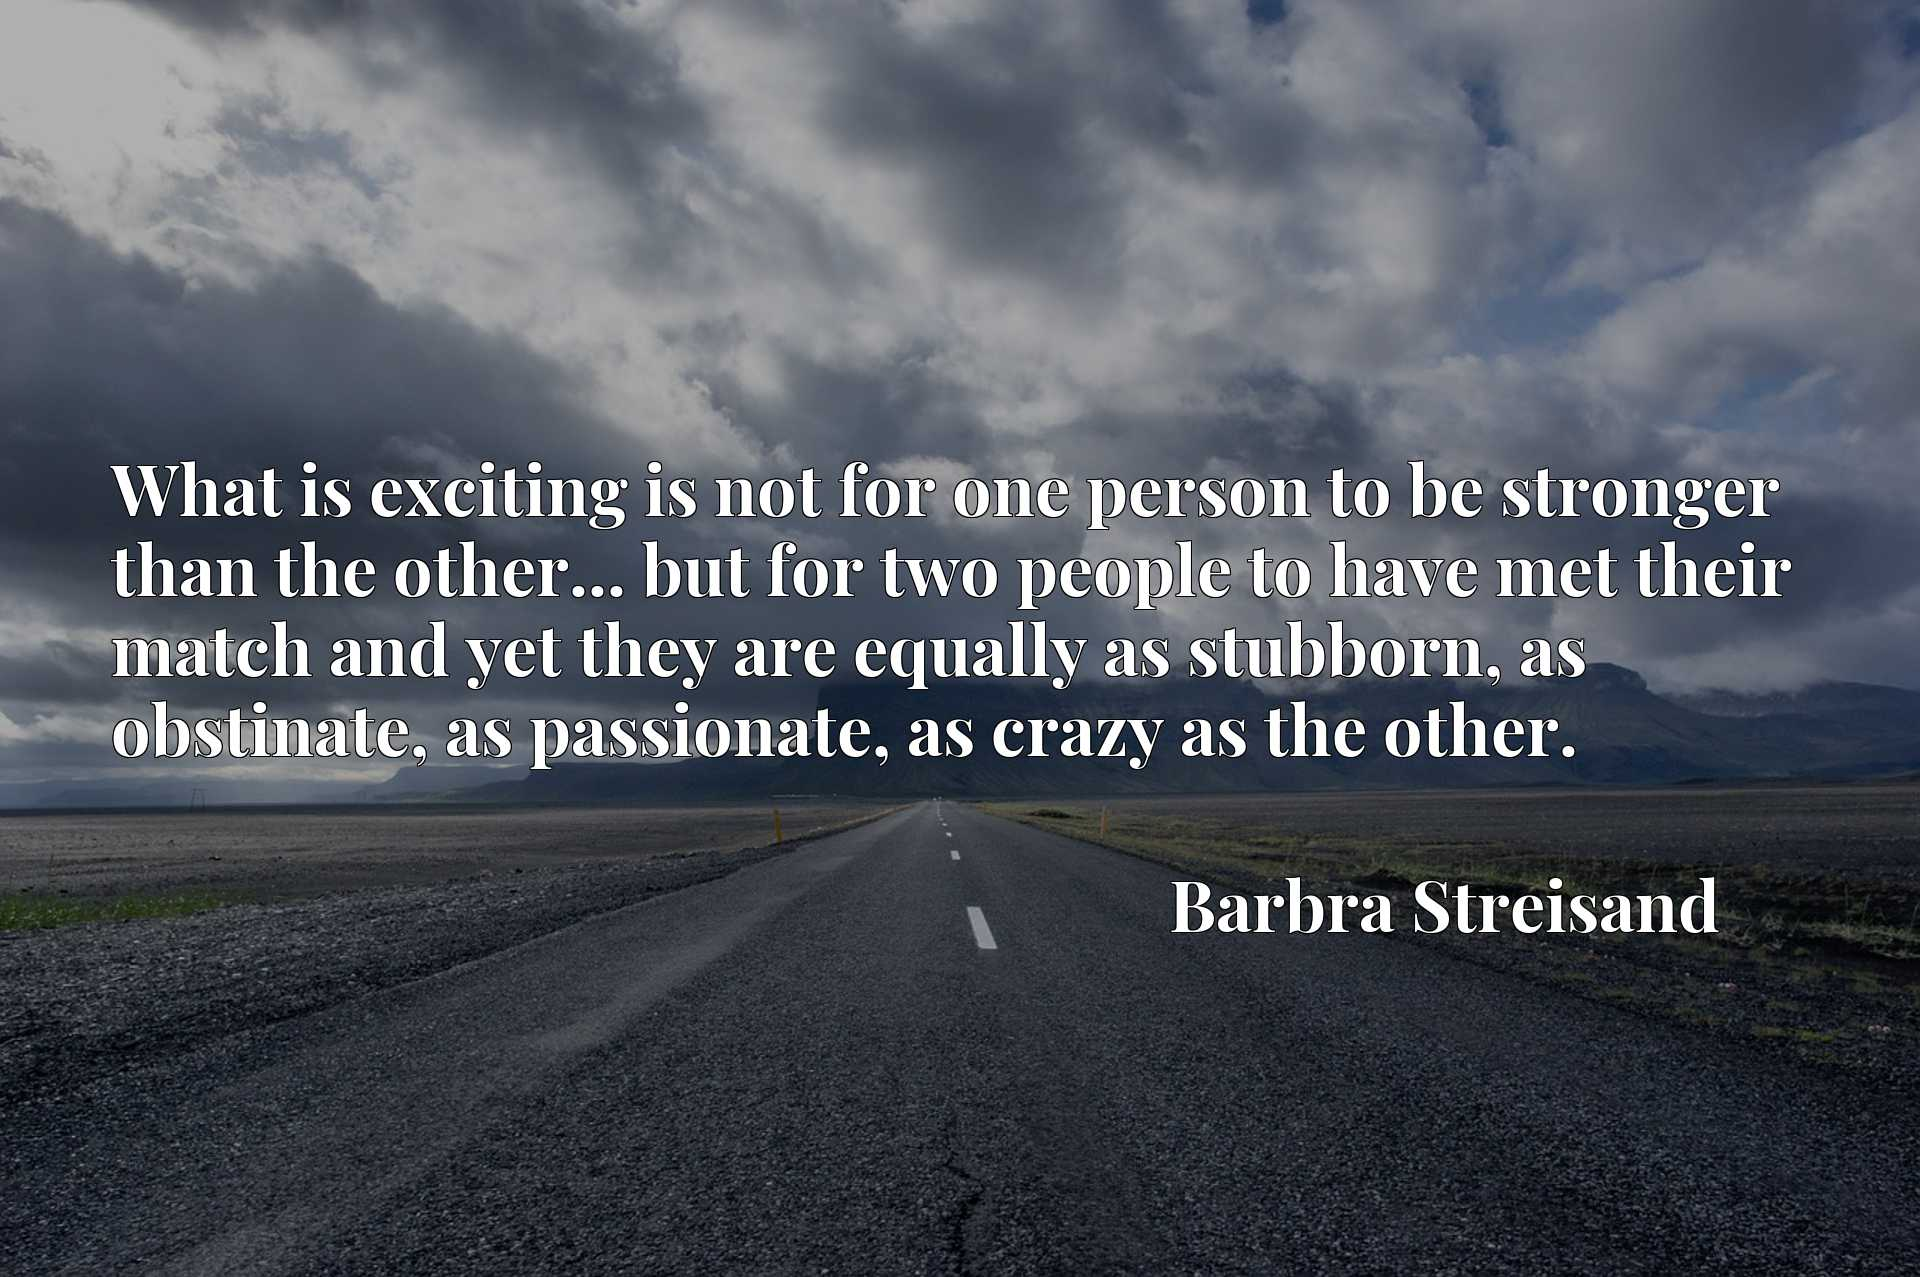 Quote Picture :What is exciting is not for one person to be stronger than the other... but for two people to have met their match and yet they are equally as stubborn, as obstinate, as passionate, as crazy as the other.